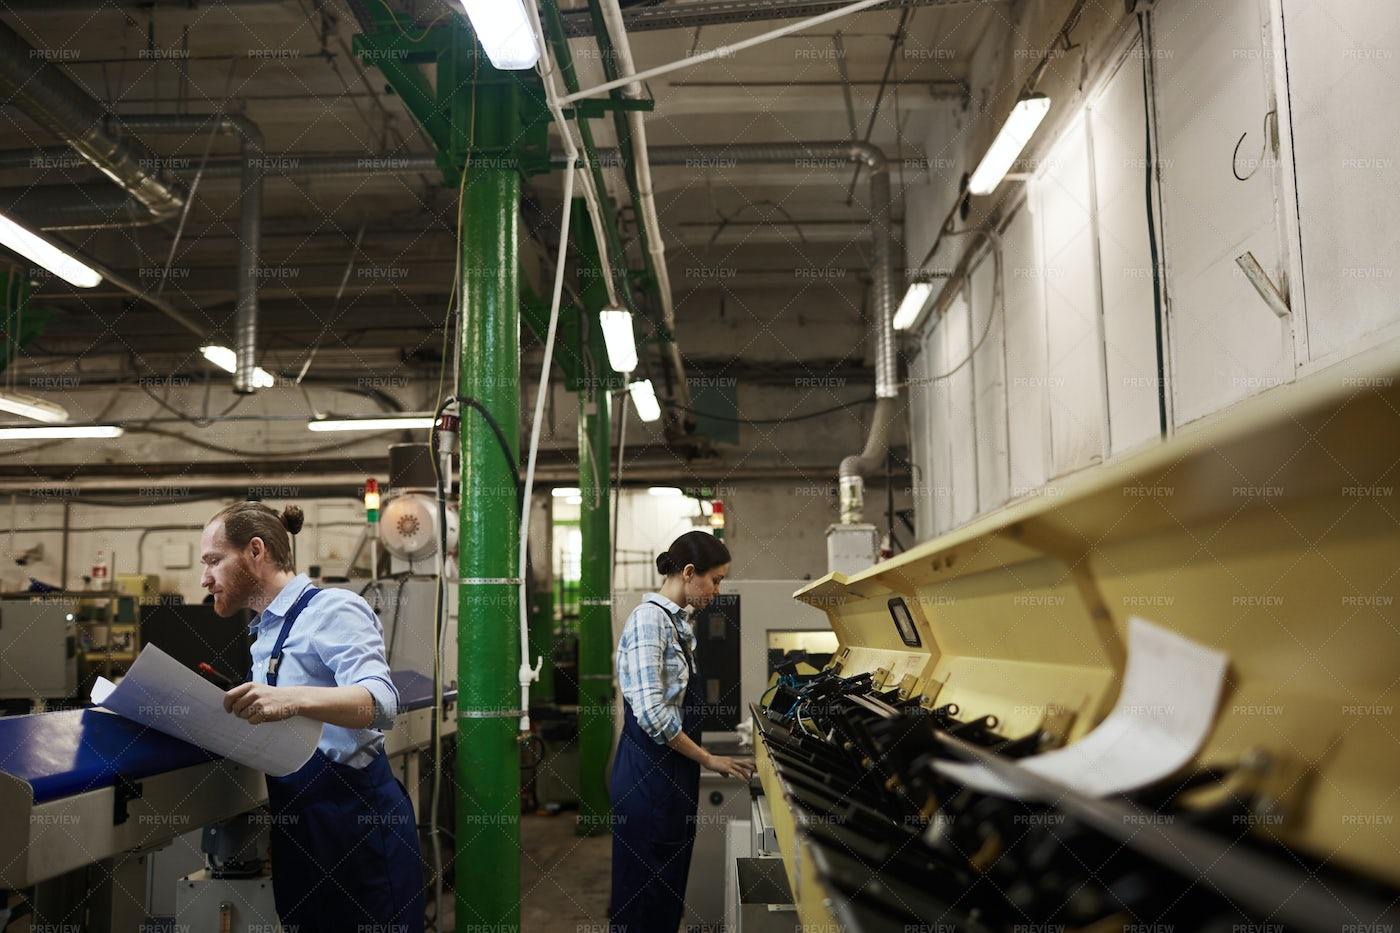 Working Process In Factory: Stock Photos